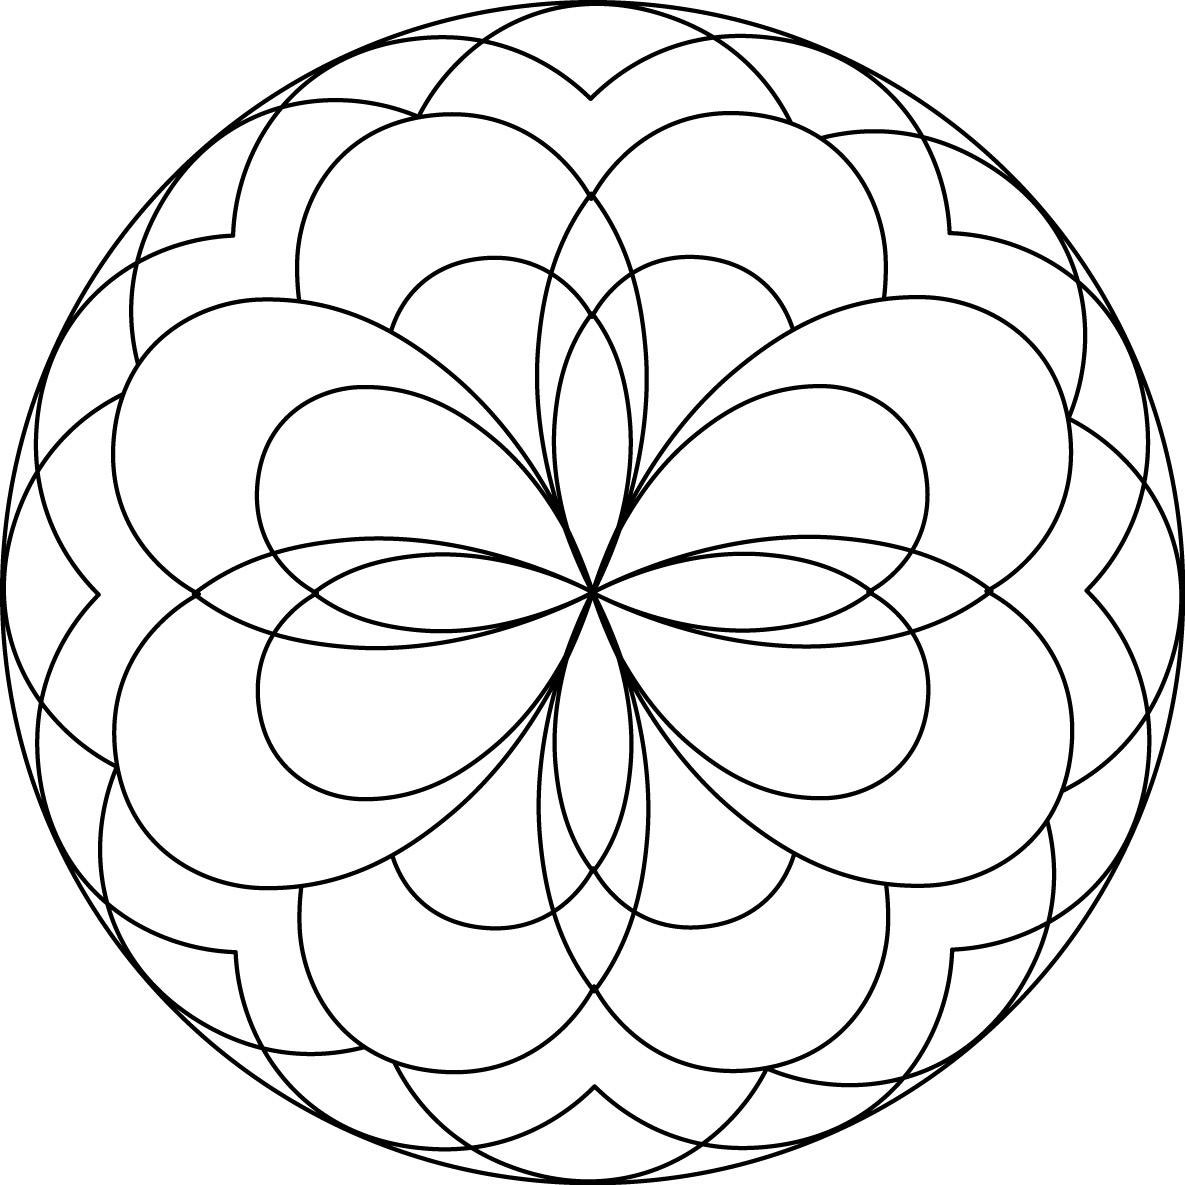 mandala coloring pages for kids - Childrens Coloring Pages Print